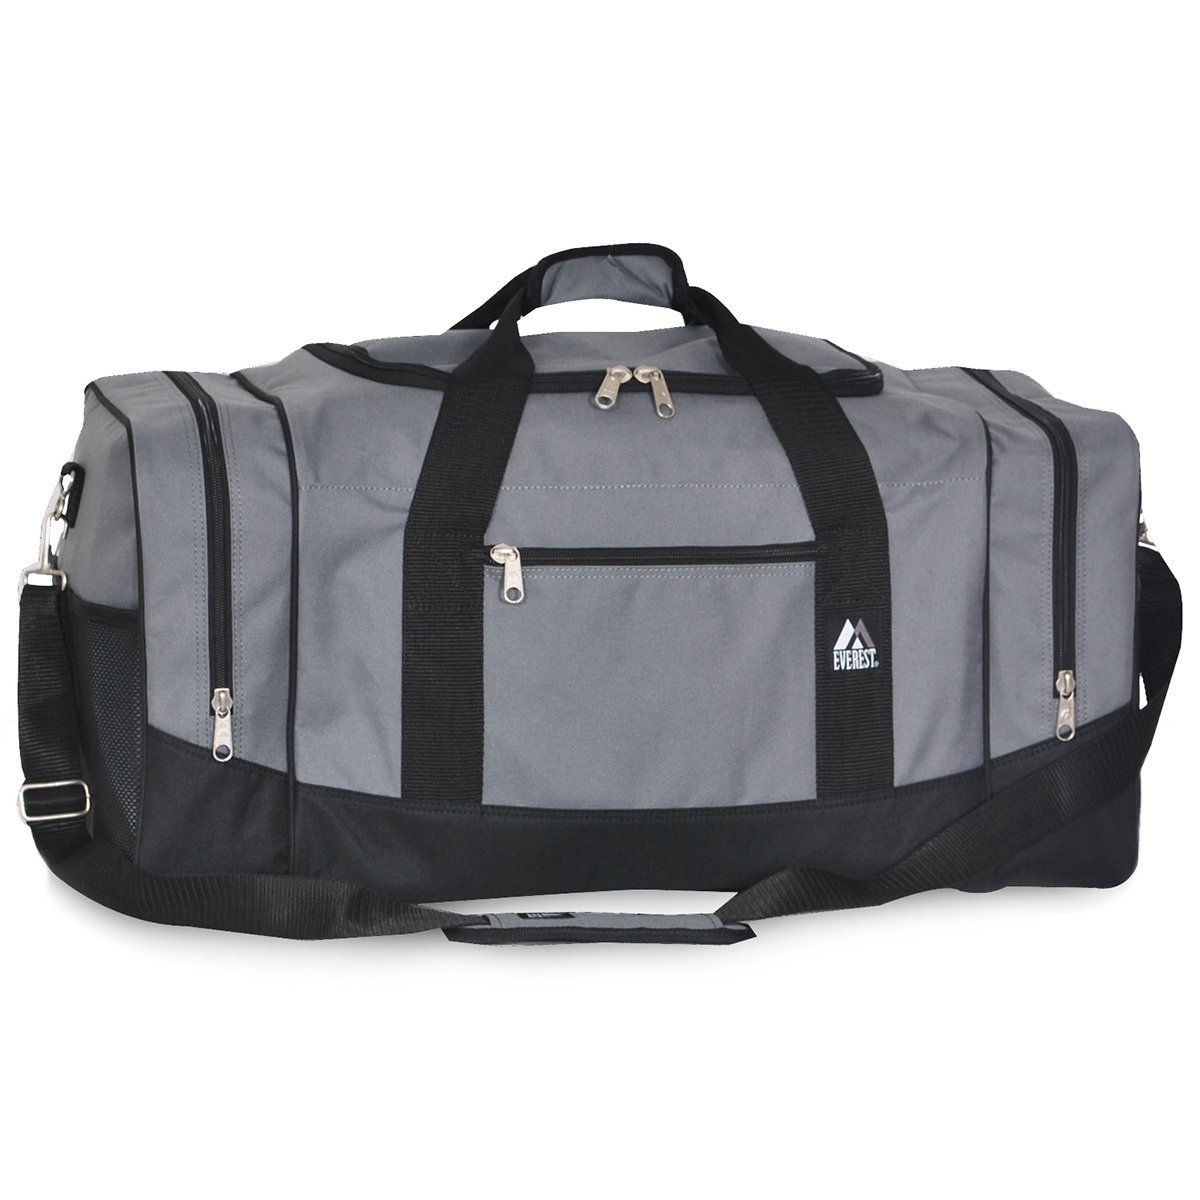 Everest Luggage Sporty Gear Bag - Large (One Size, Dark Gray)